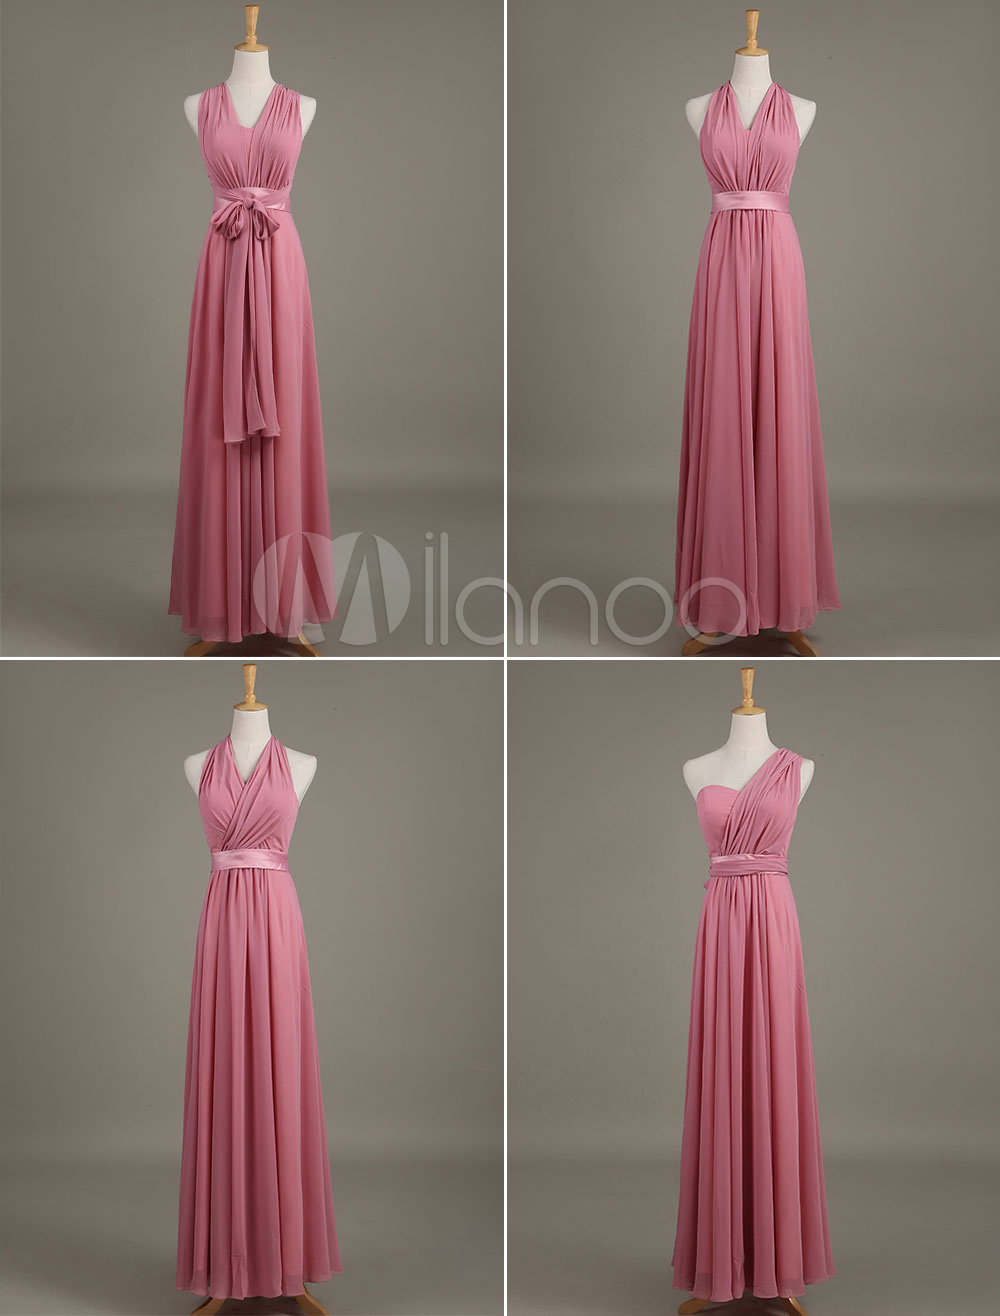 Multiway Bridesmaid Dress Fuchsia Pink Sash Sweetheart A Line Long Wedding Party Dress